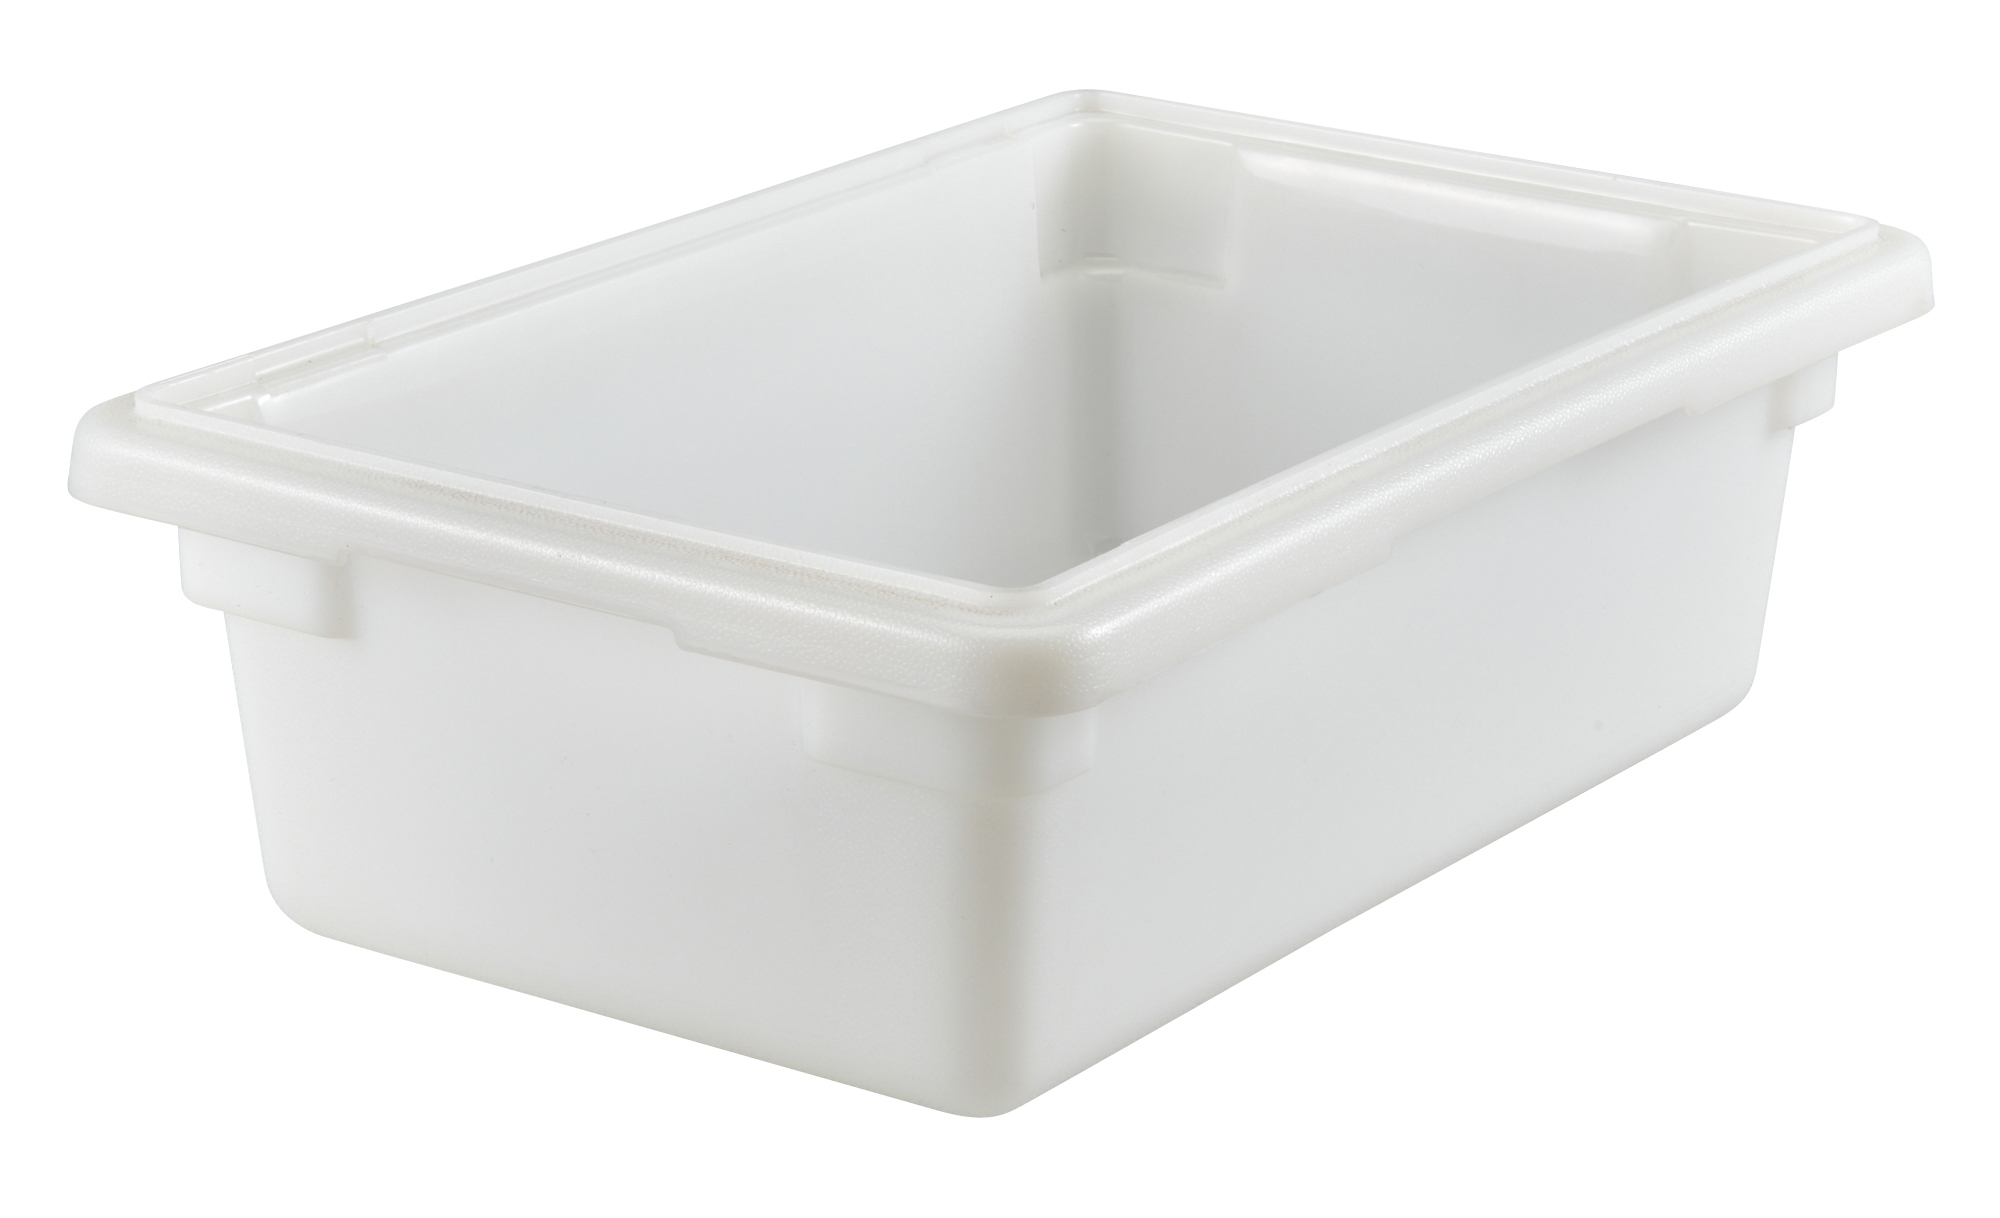 Cambro 12186P148 food/beverage storage container